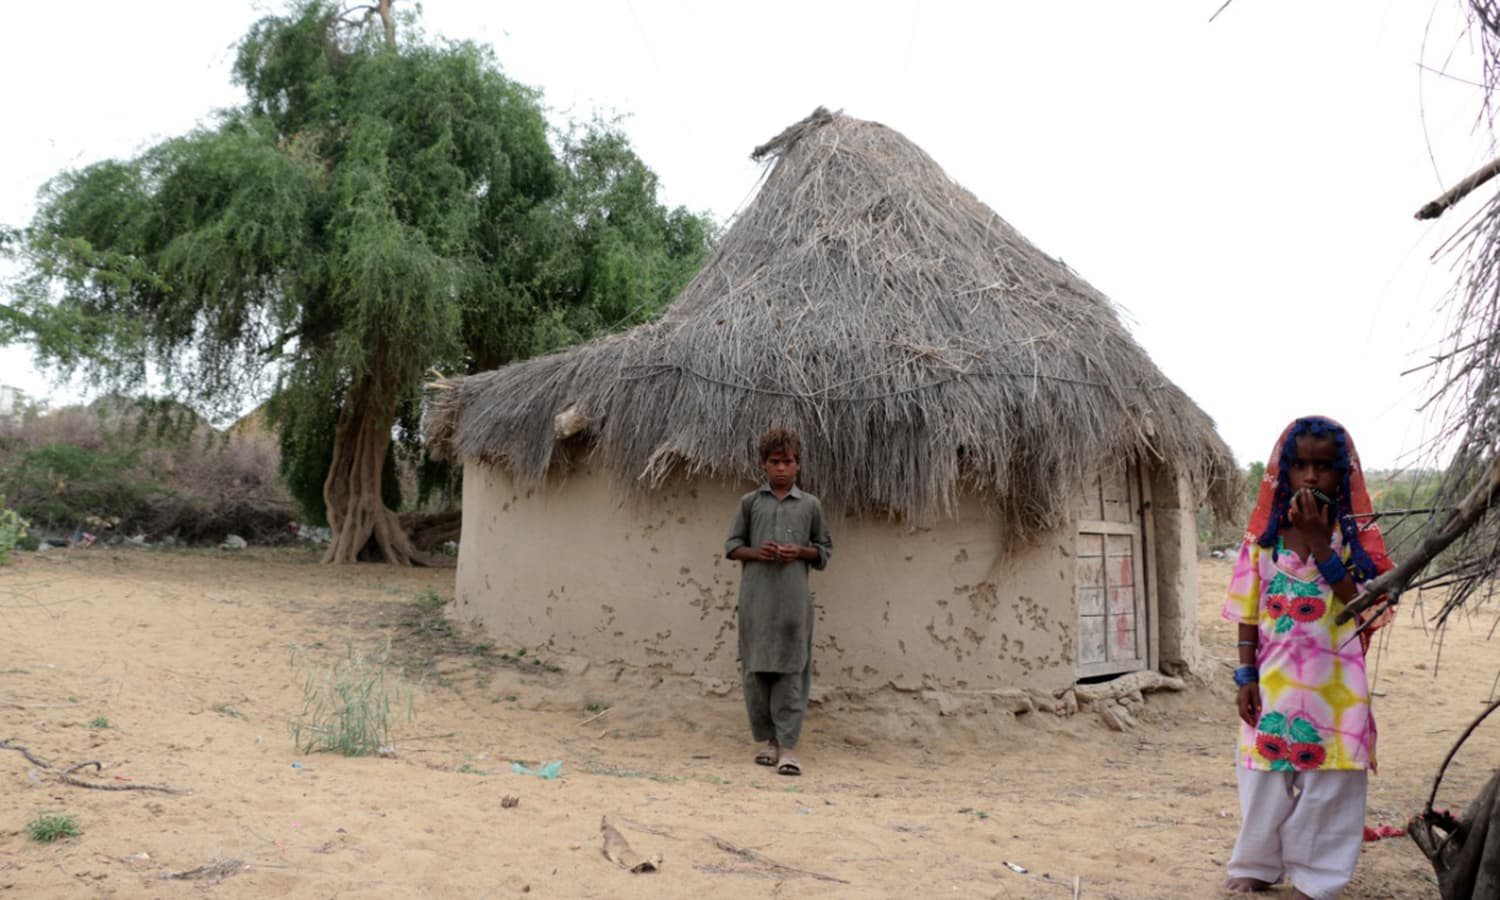 A modest dwelling commonly found across the poverty-stricken region.